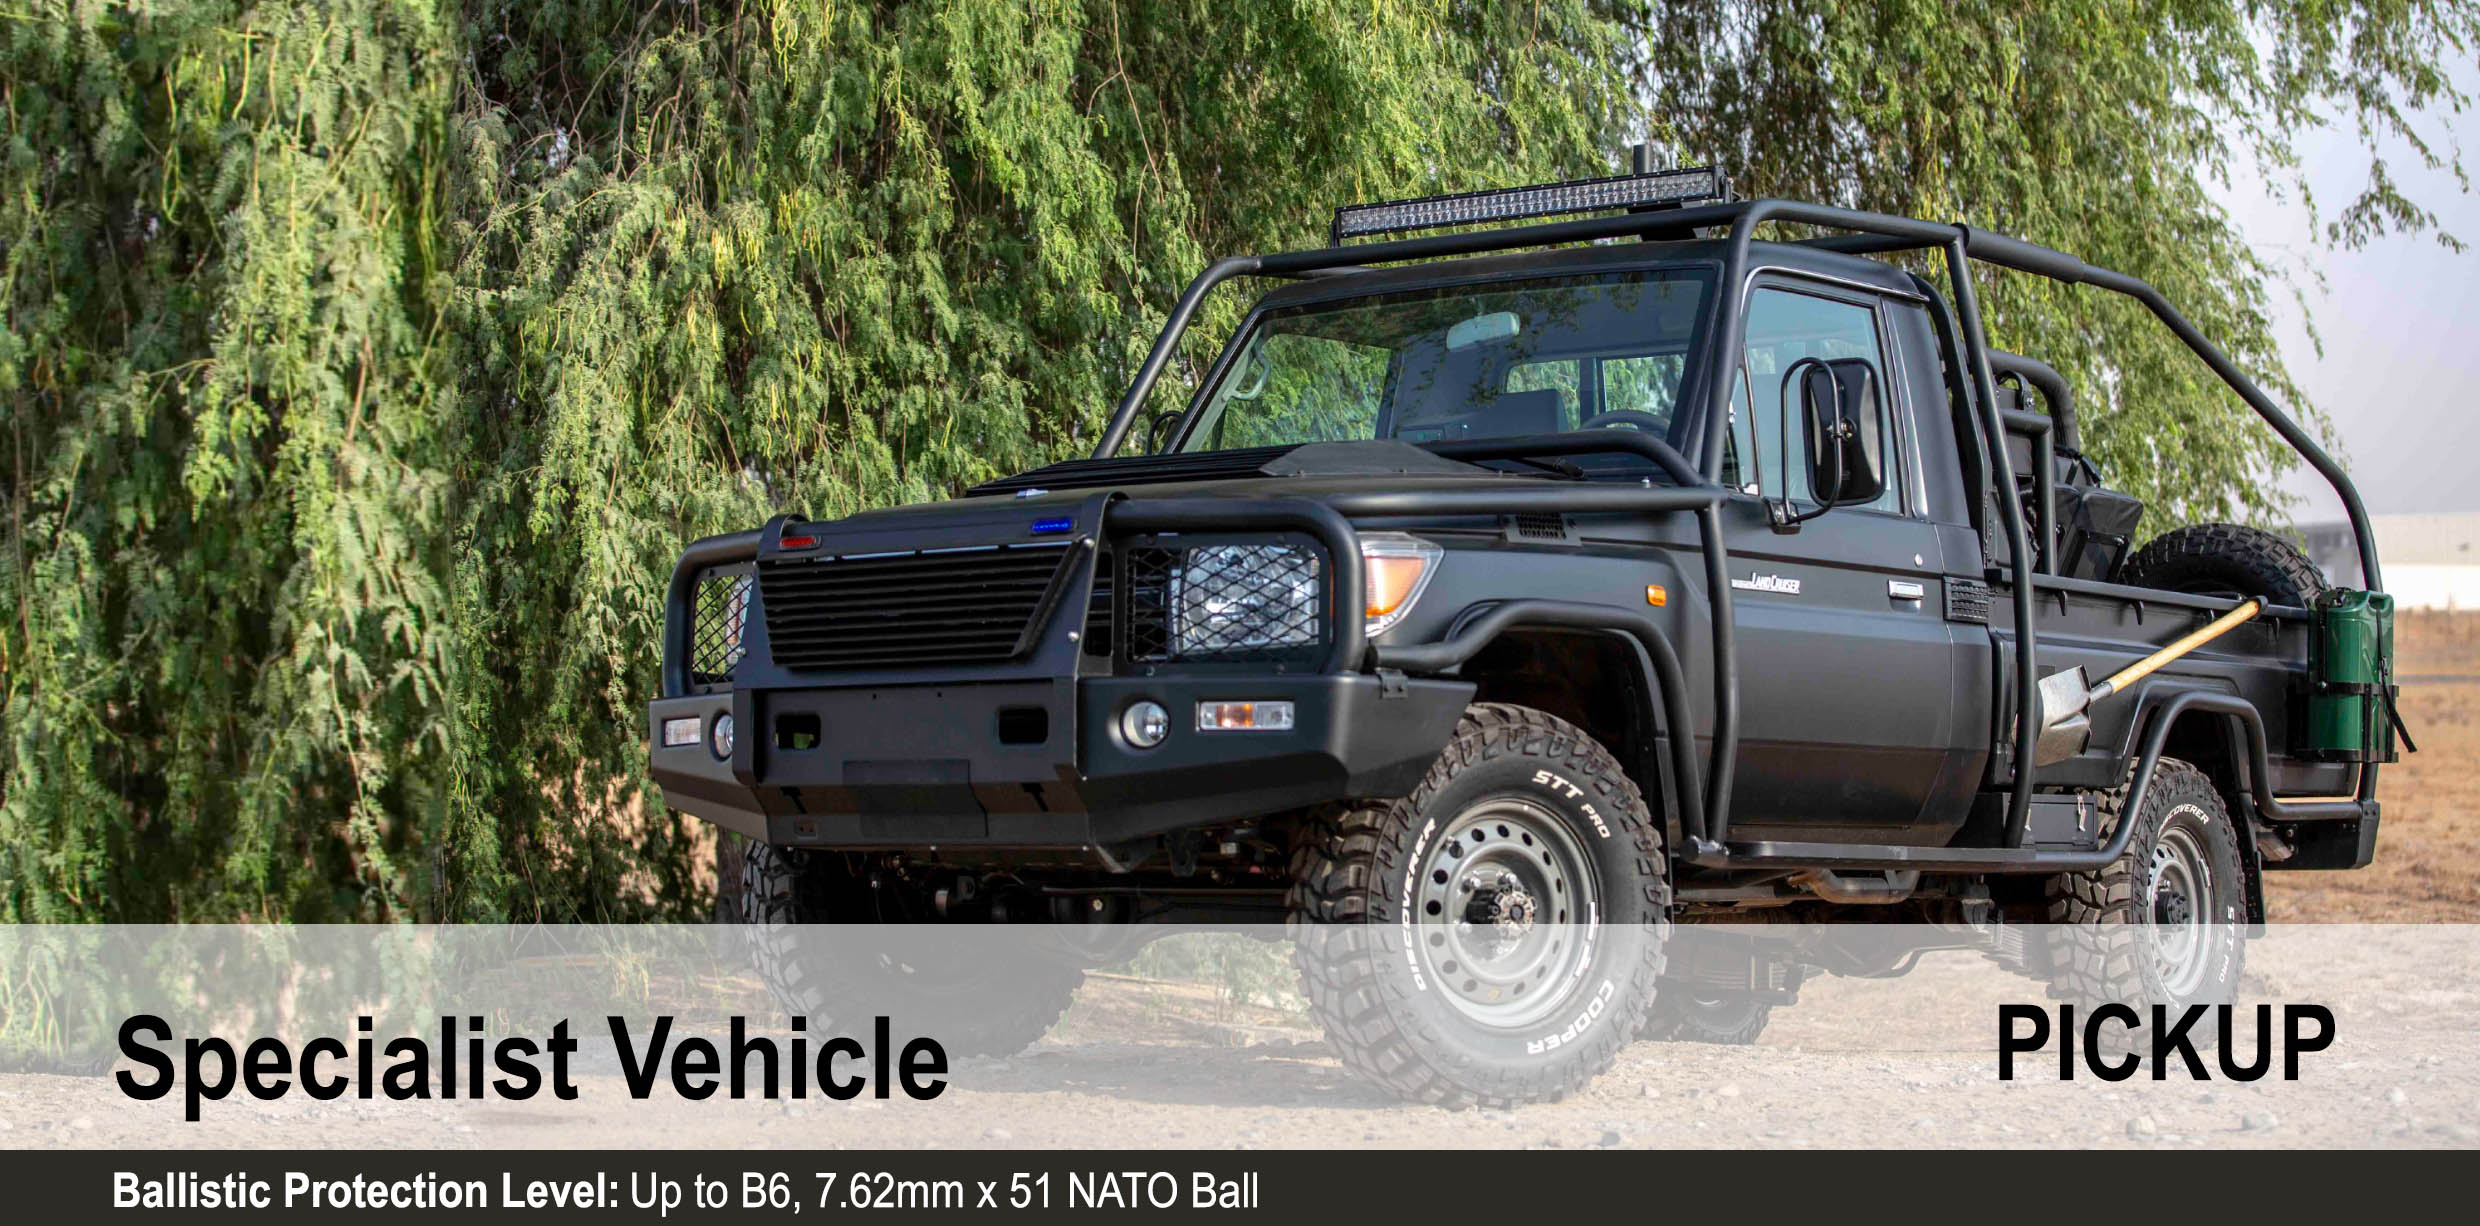 Toyota Landcruiser 79 Pick Up Specialist Vehicle